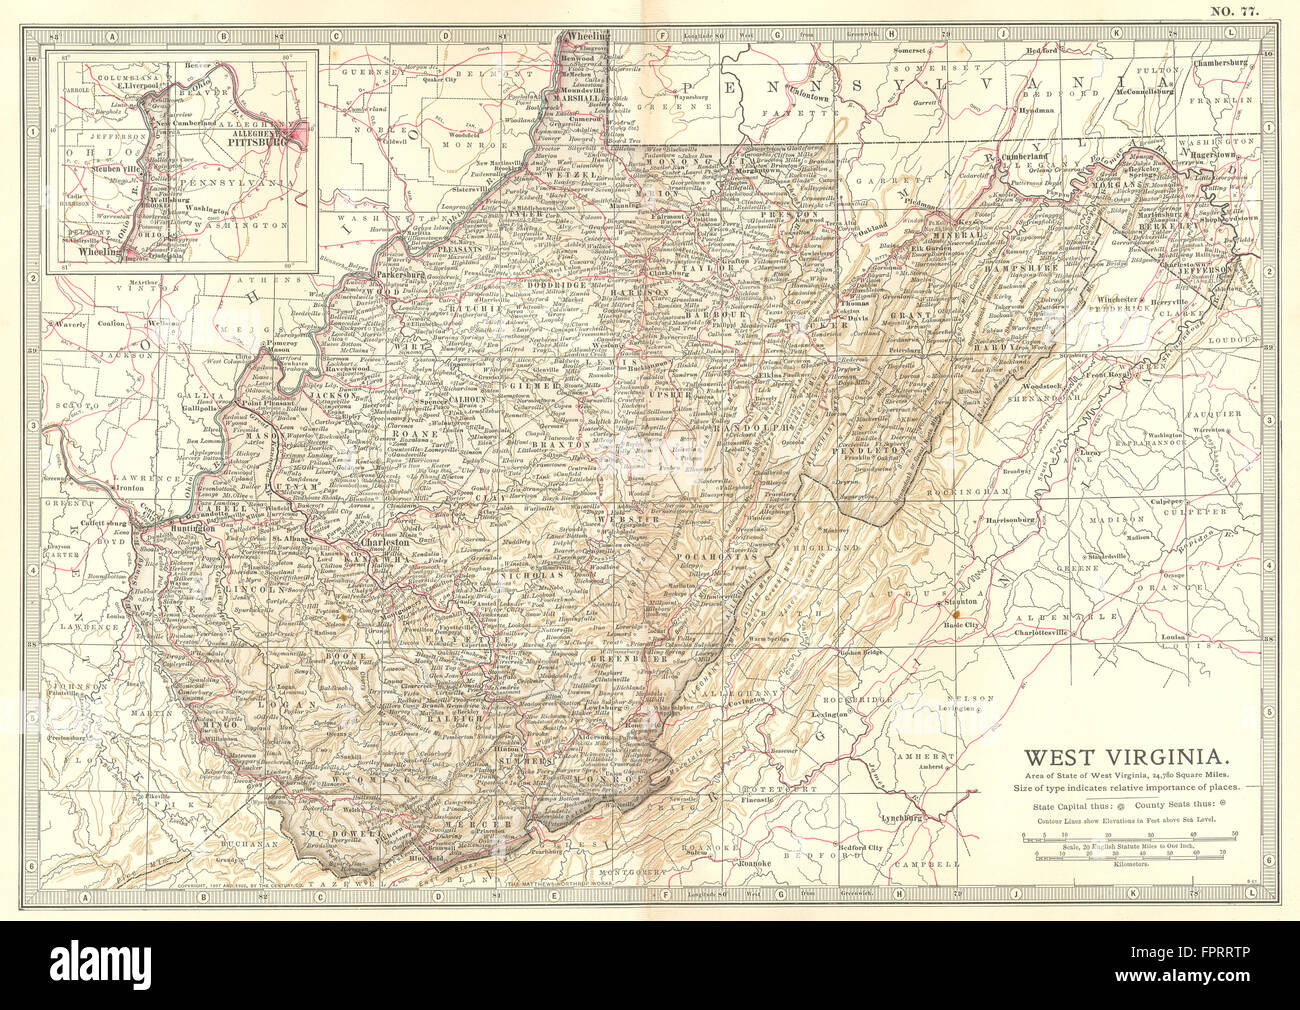 West Virginia State Map Showing Stock Photos & West Virginia State ...